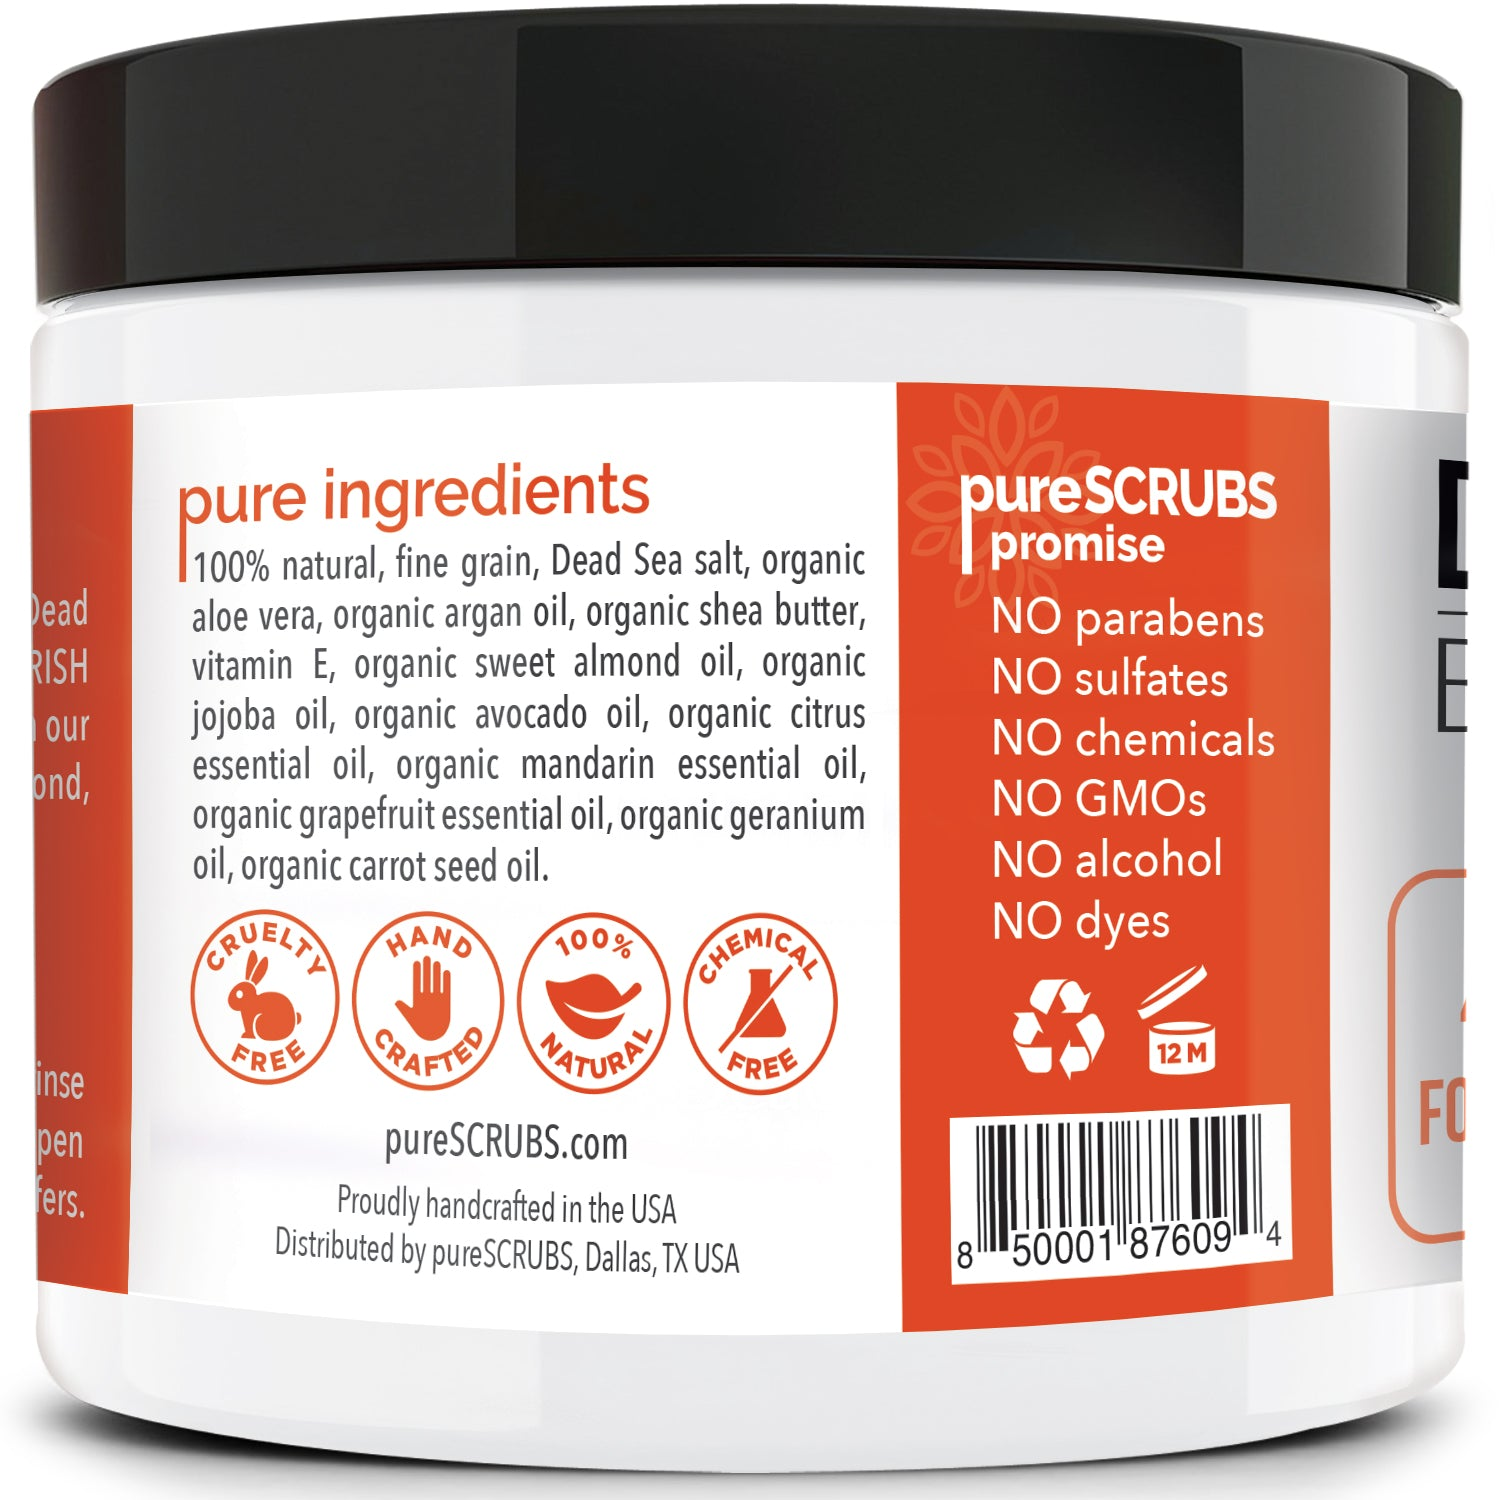 purescrubs 16oz jar Premium Blend #25 citrus dead sea salt body scrub to exfoliate your skin comes with free loofah pad free exfoliating organic oatmeal bar soap shea butter and honey and free eco-friendly bamboo spoon to stir and scoop out the scrub